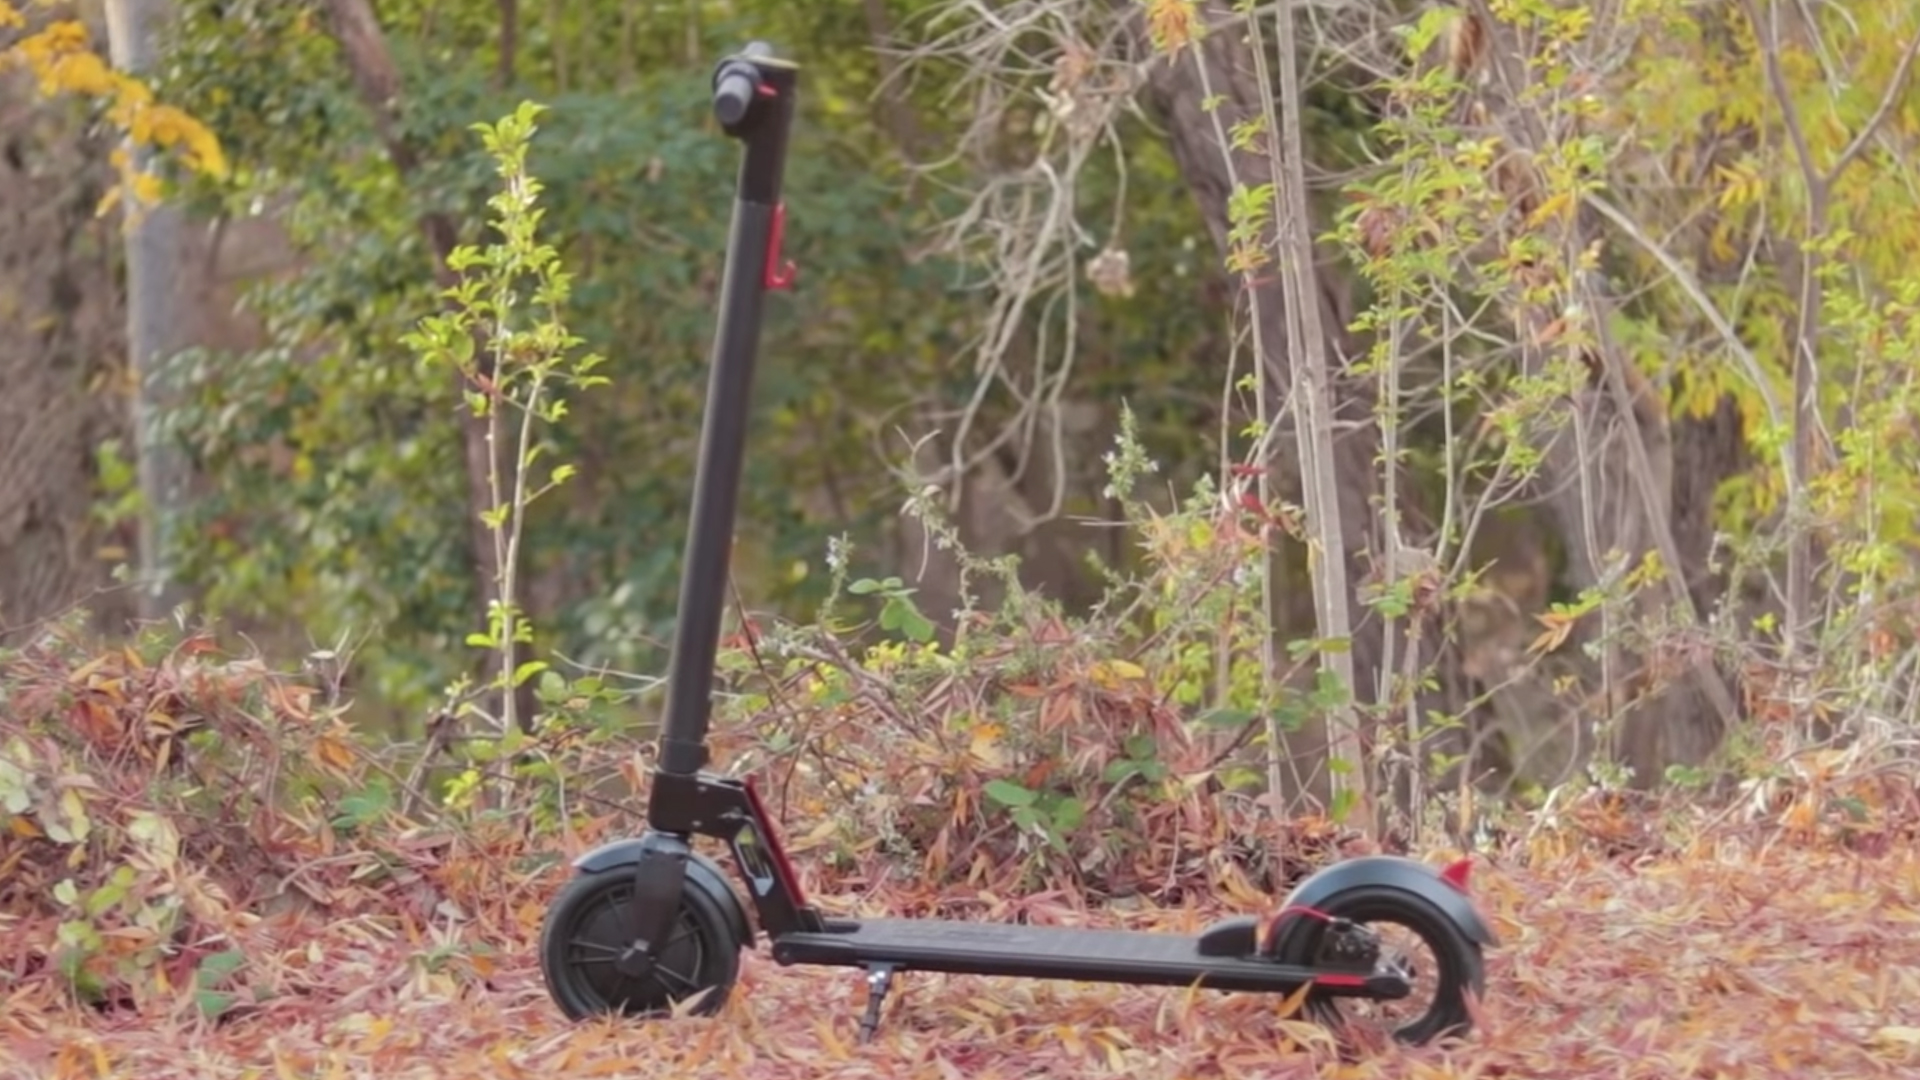 electrified-reviews-gotrax-gxl-folding-electric-scooter-review-profile.jpg